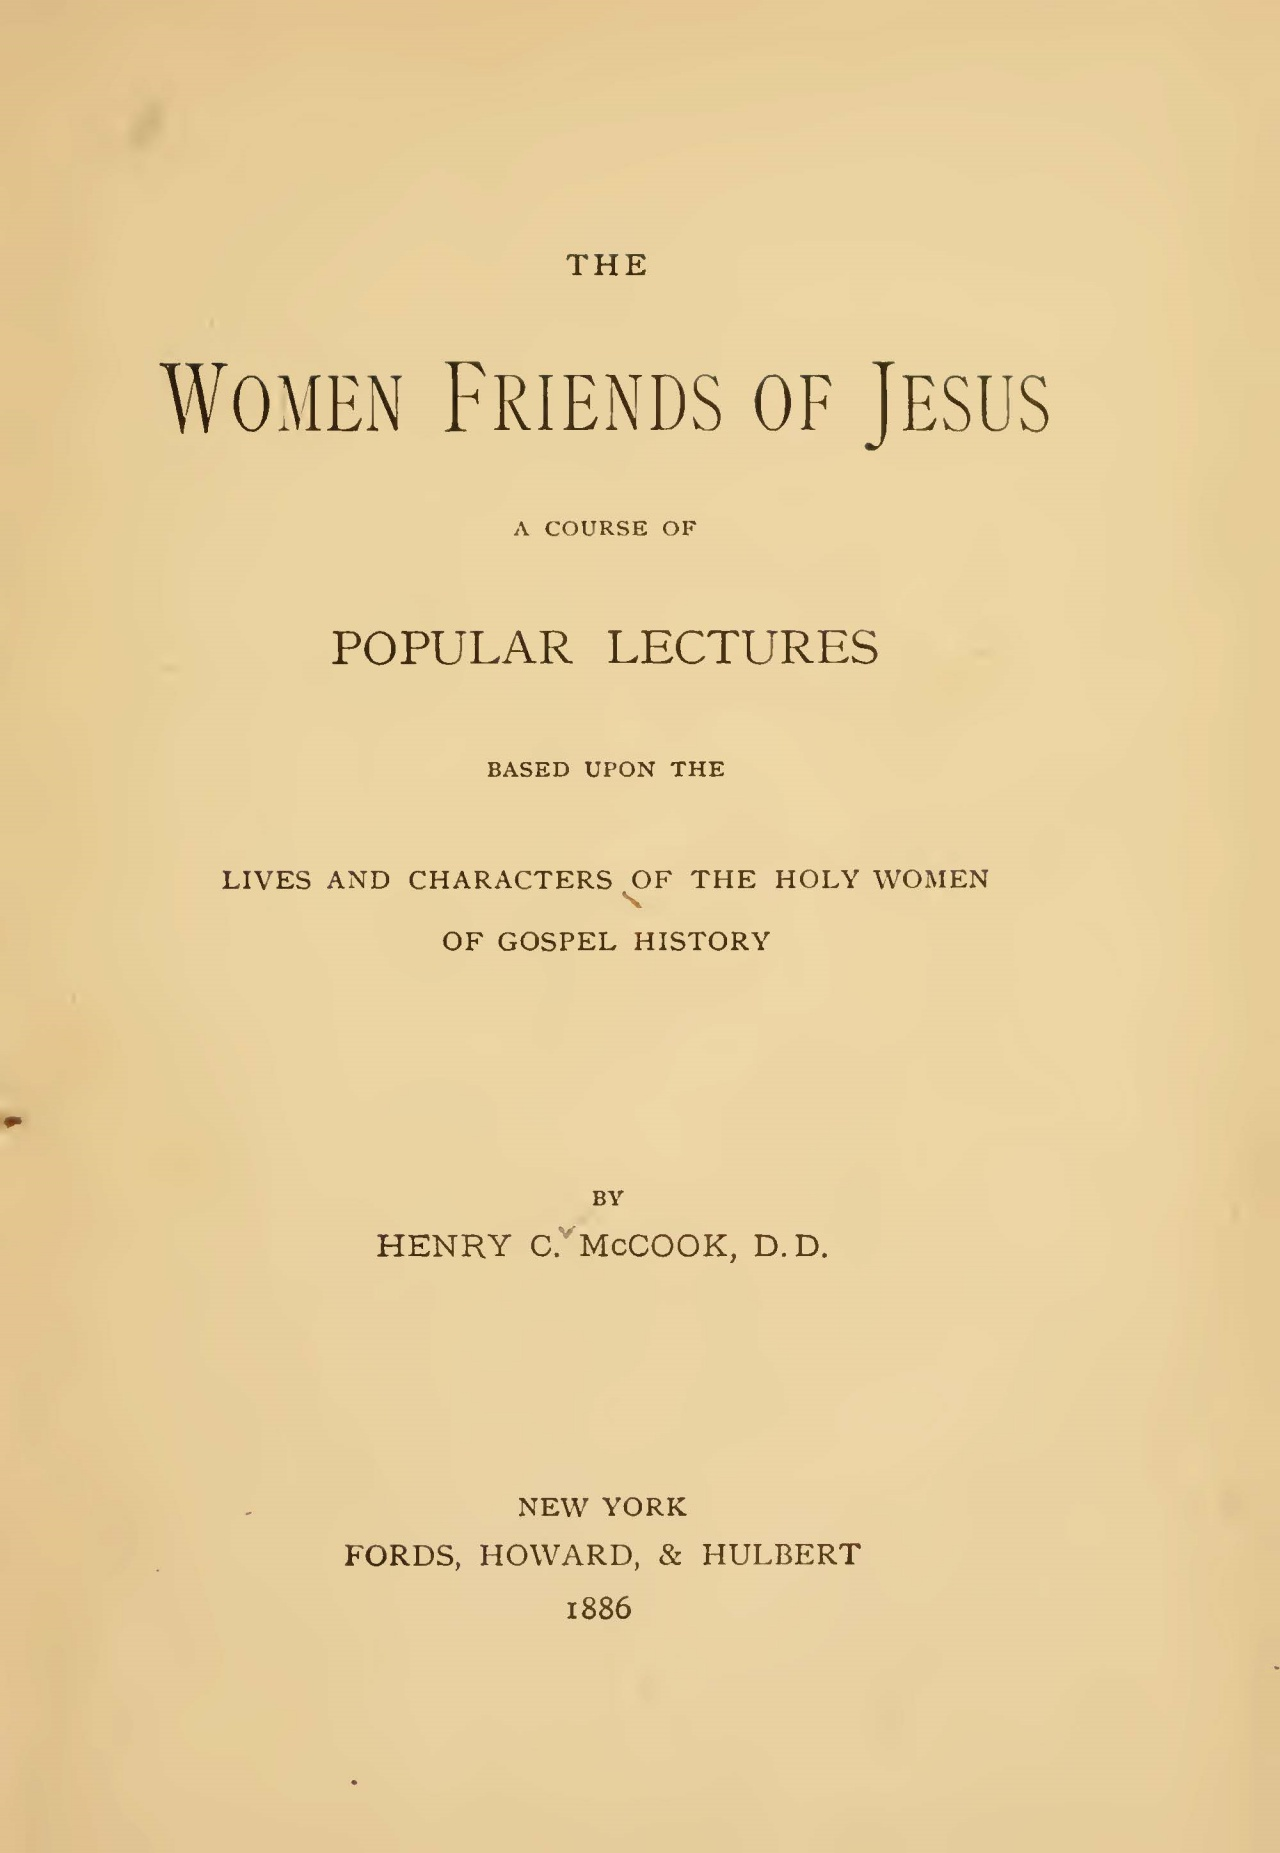 McCook, Henry Christopher, The Women Friends of Jesus Title Page.jpg